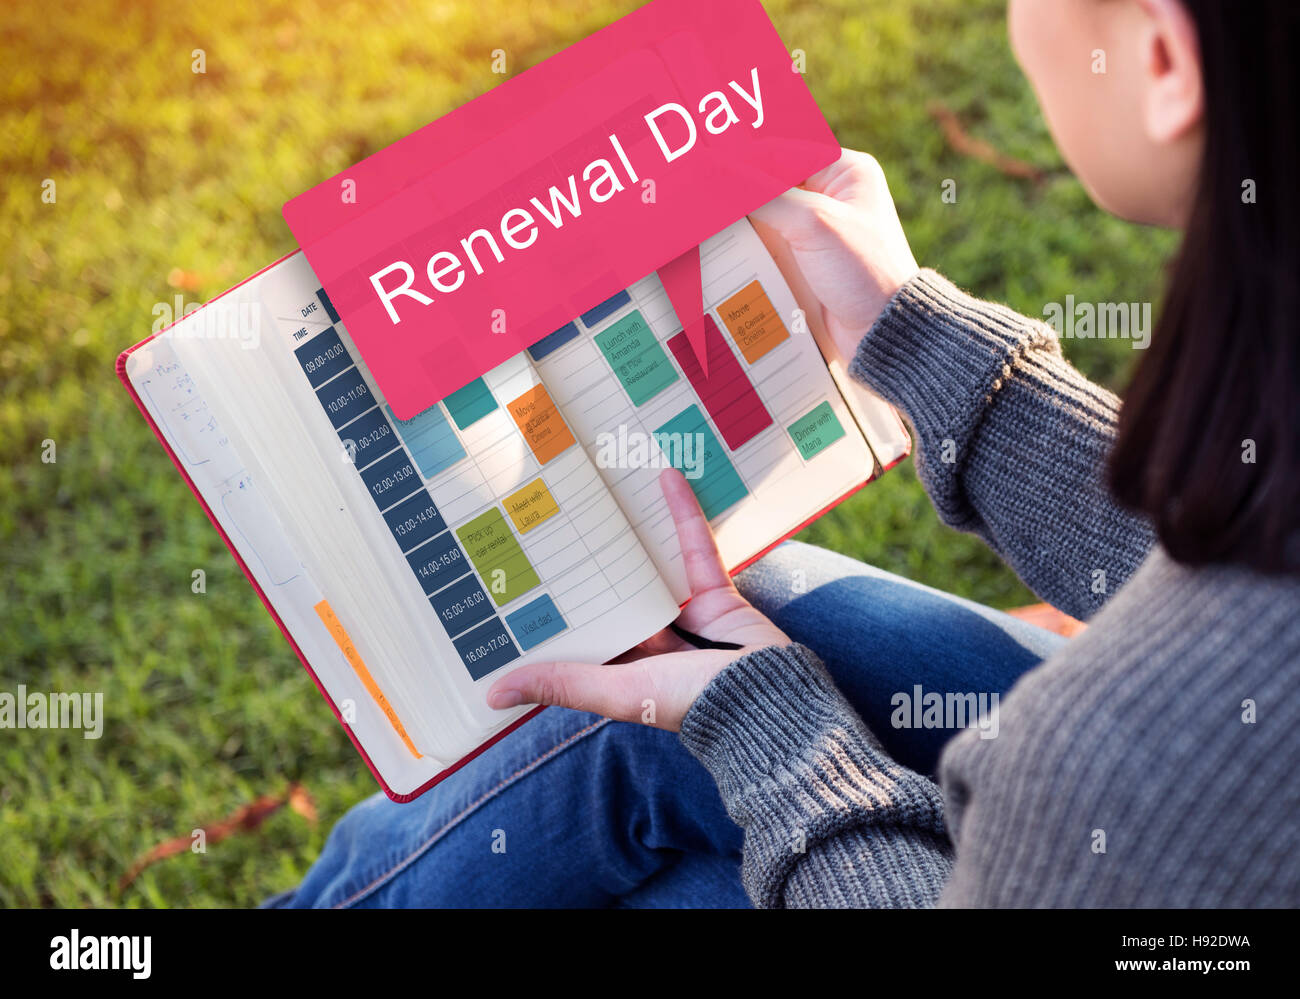 Renewal Day Care Change Conservation Manage Concept - Stock Image